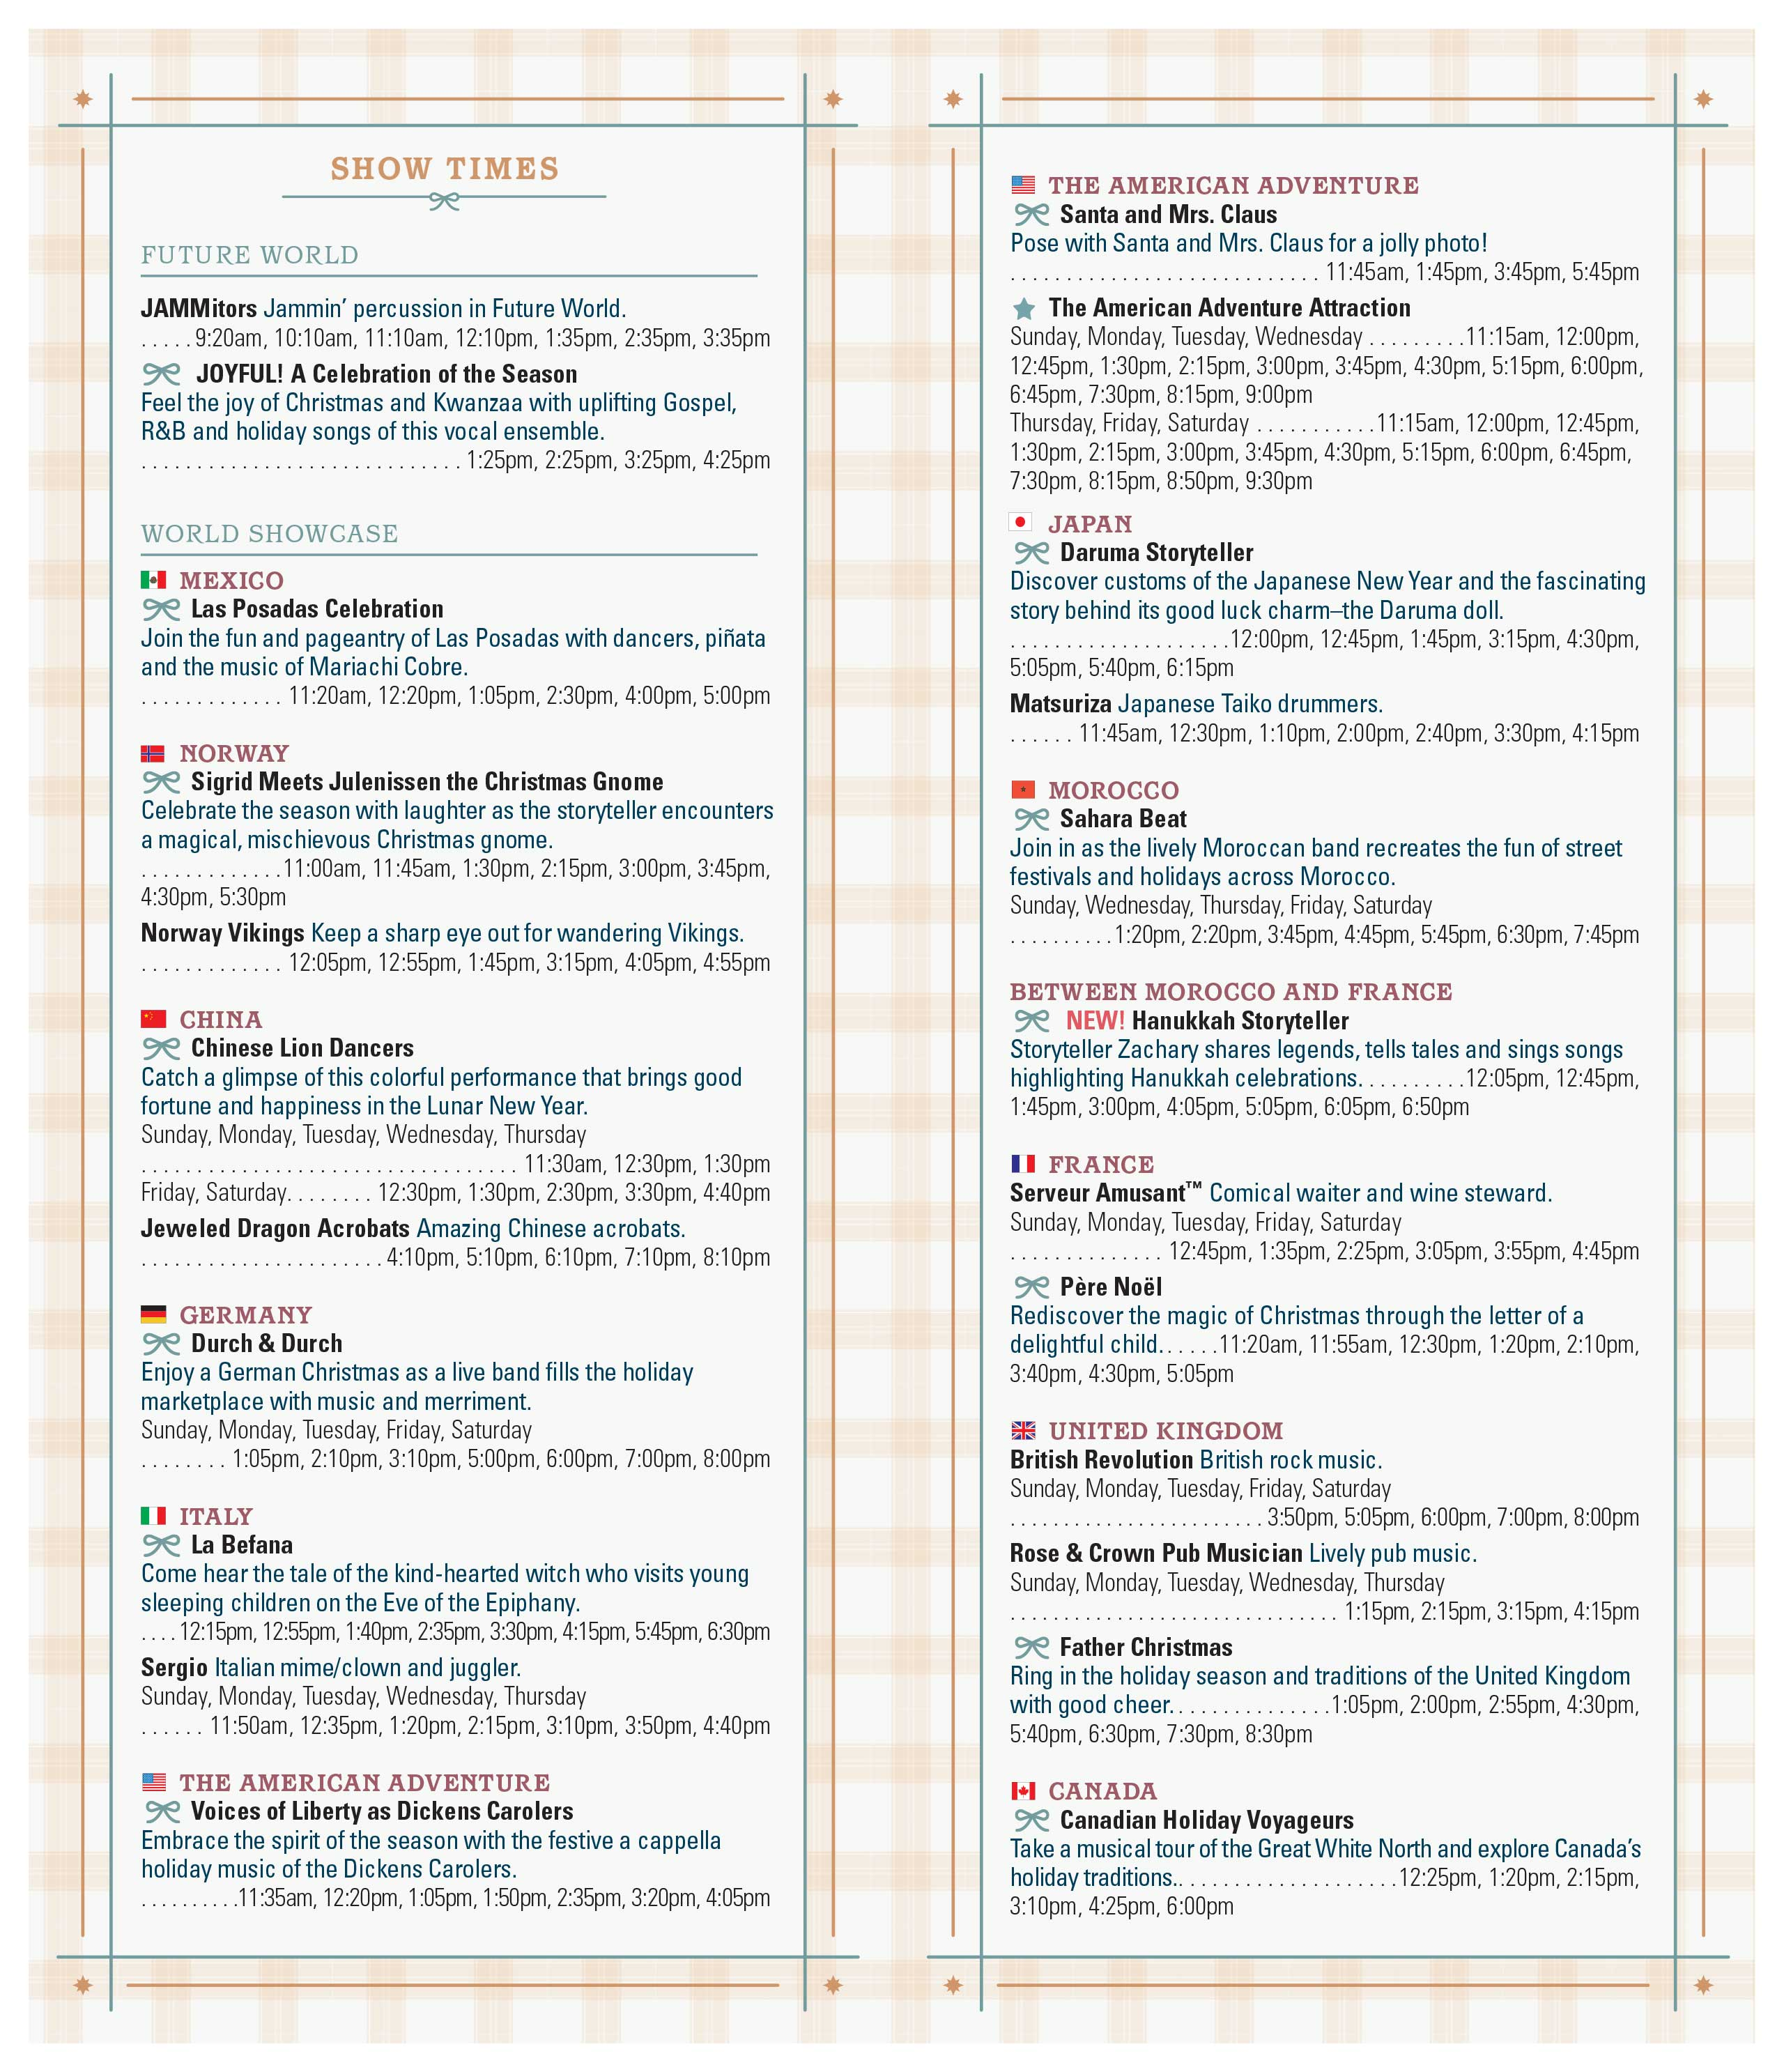 2018 Epcot Festival of the Holidays times guide - Back